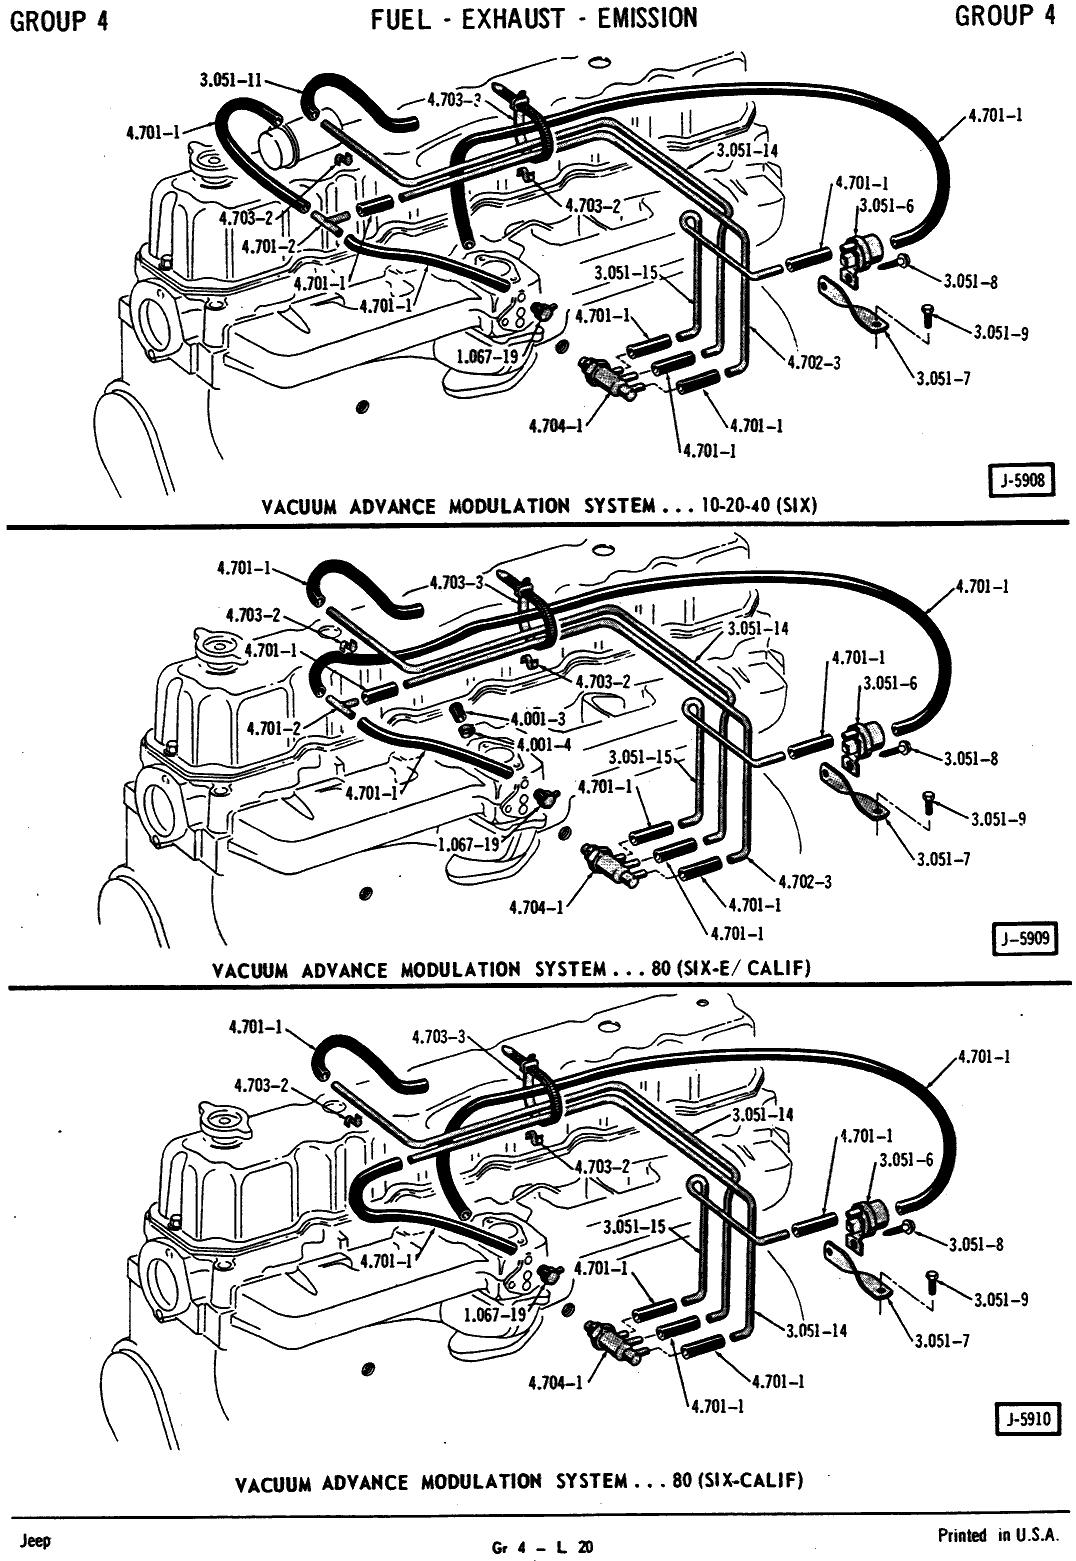 Vacuumhoses on 79 chevy ignition wiring diagram